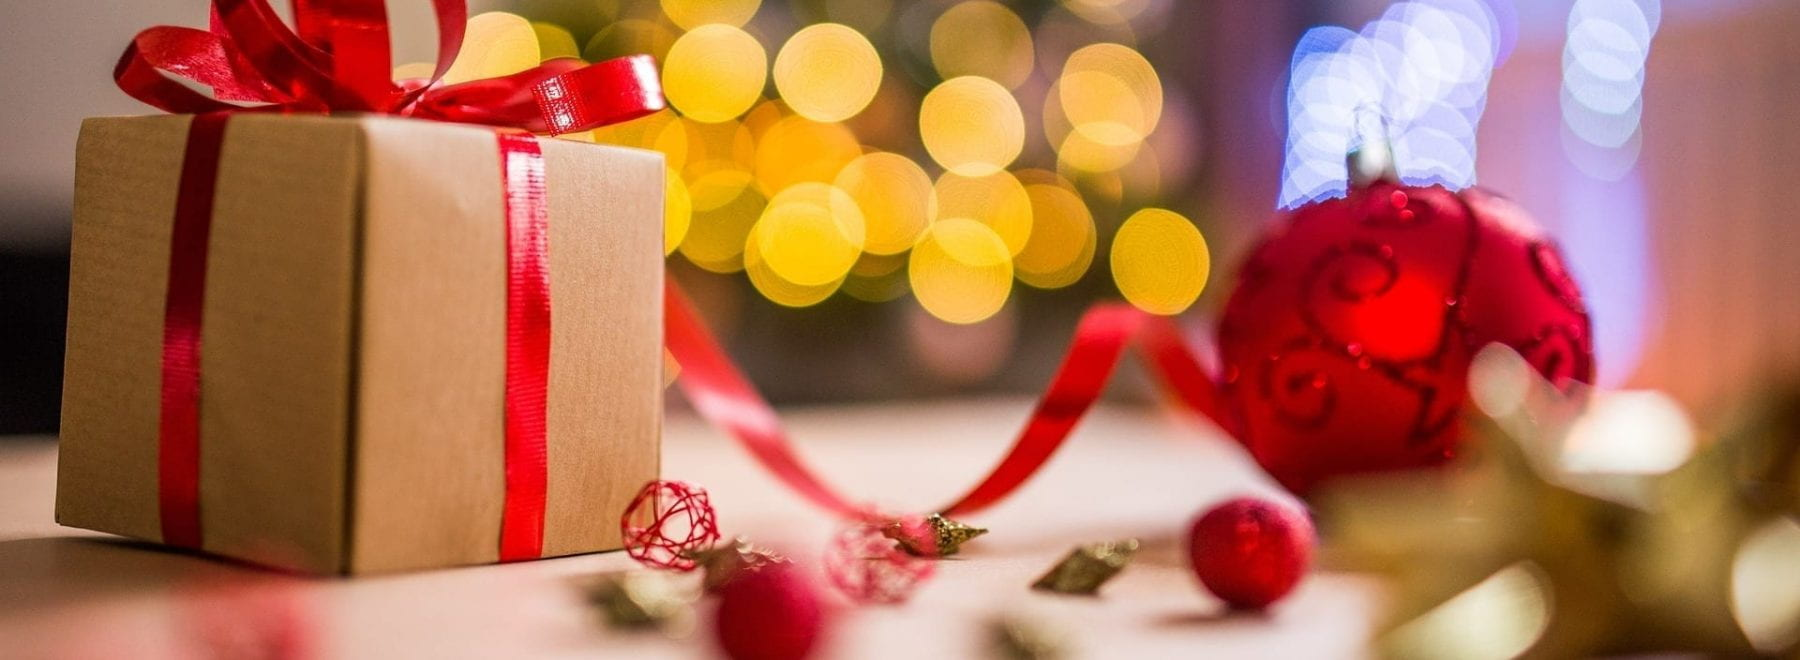 A small Christmas present wrapped in brown paper and red ribbon.